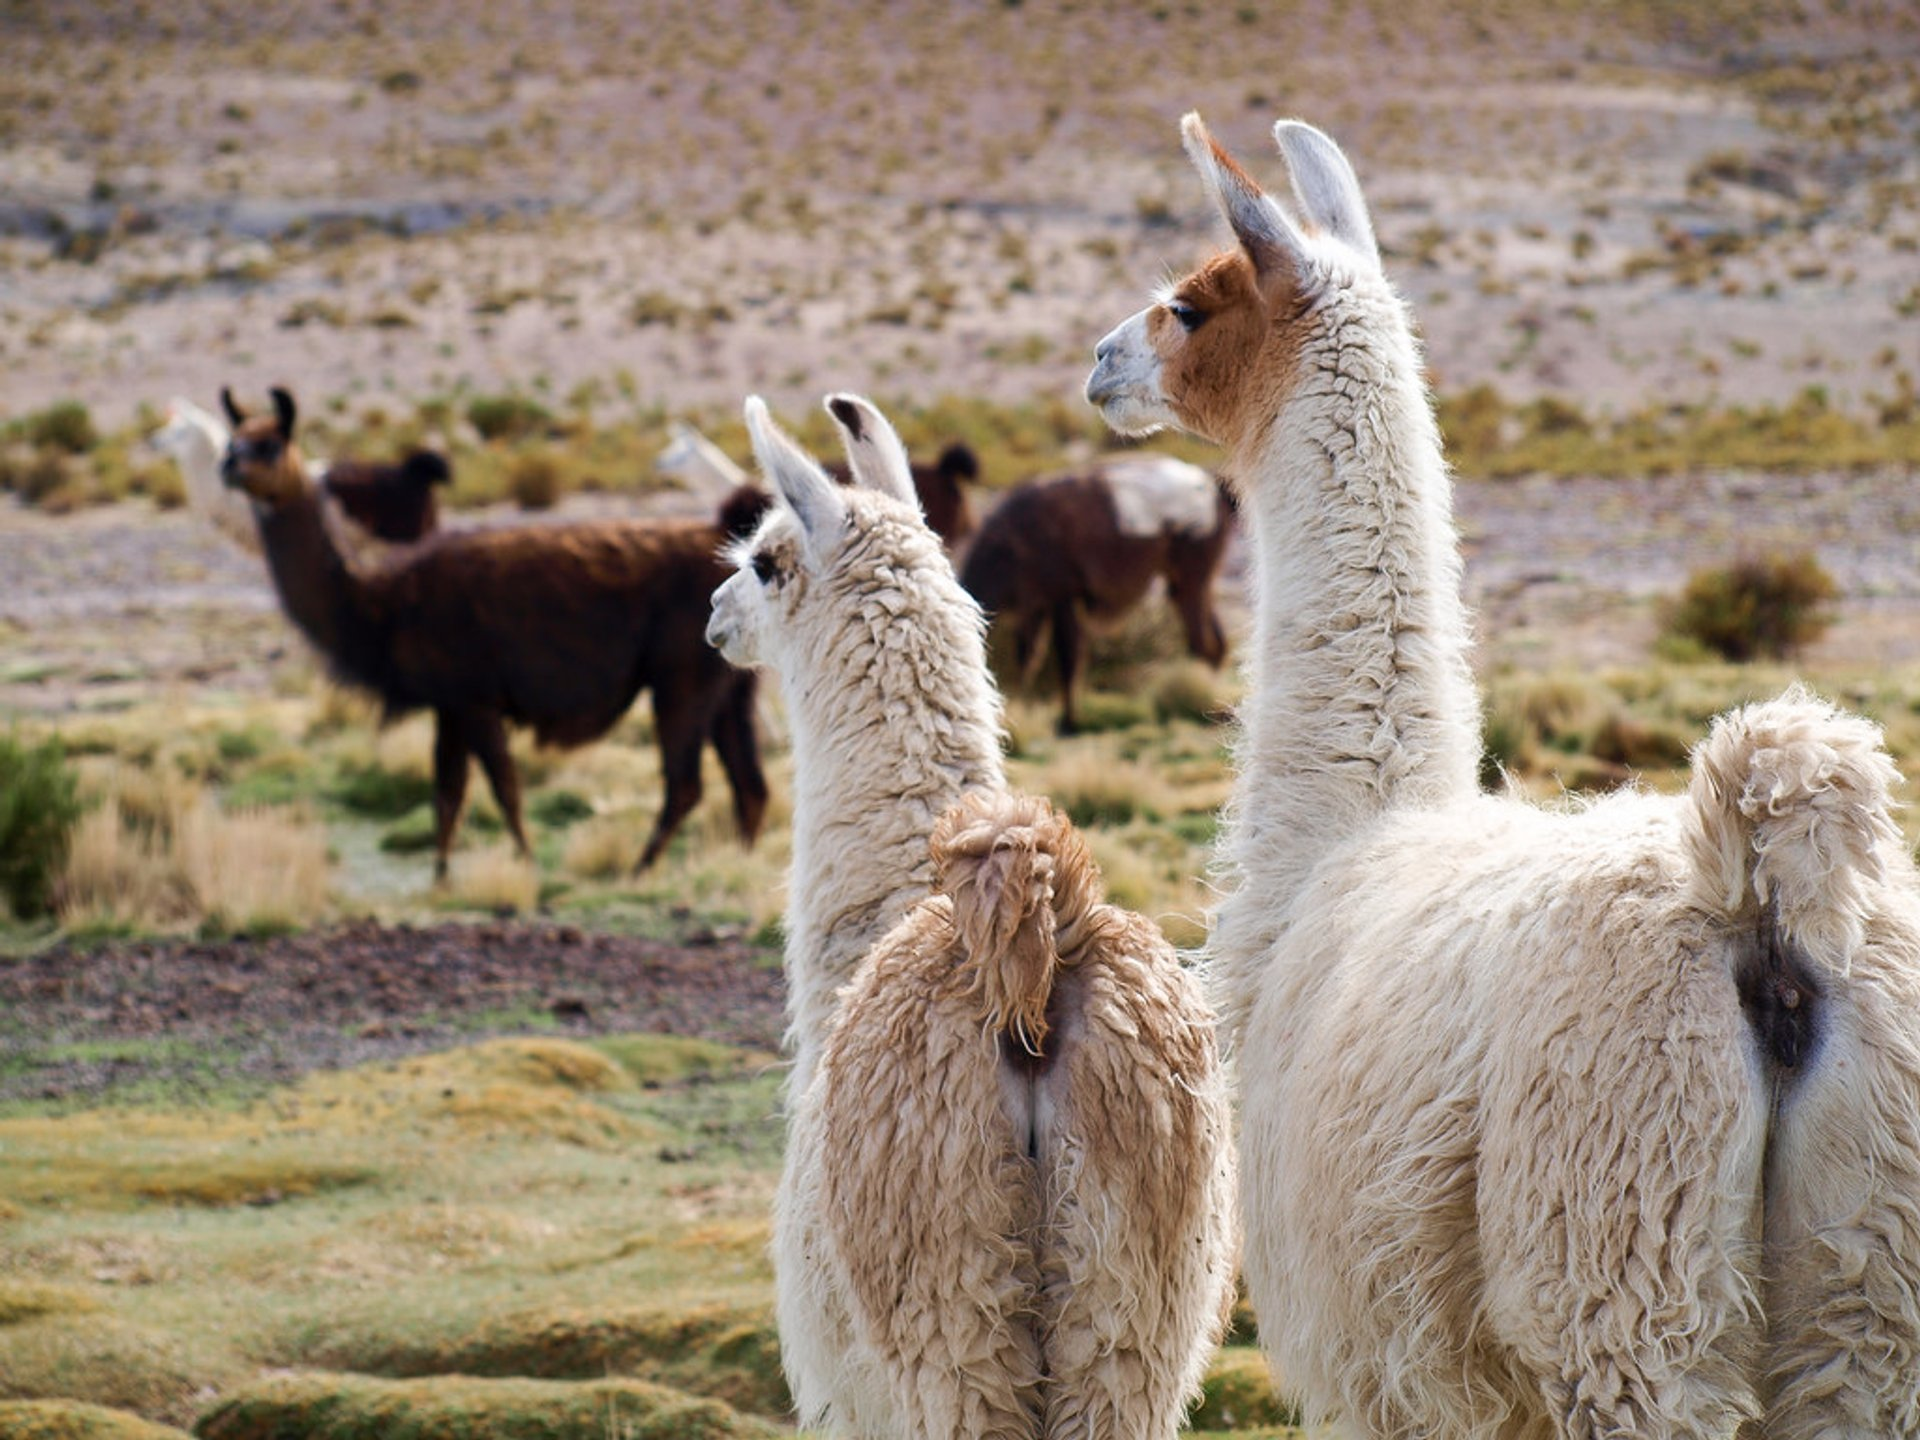 Llamas in Bolivia - Best Season 2019